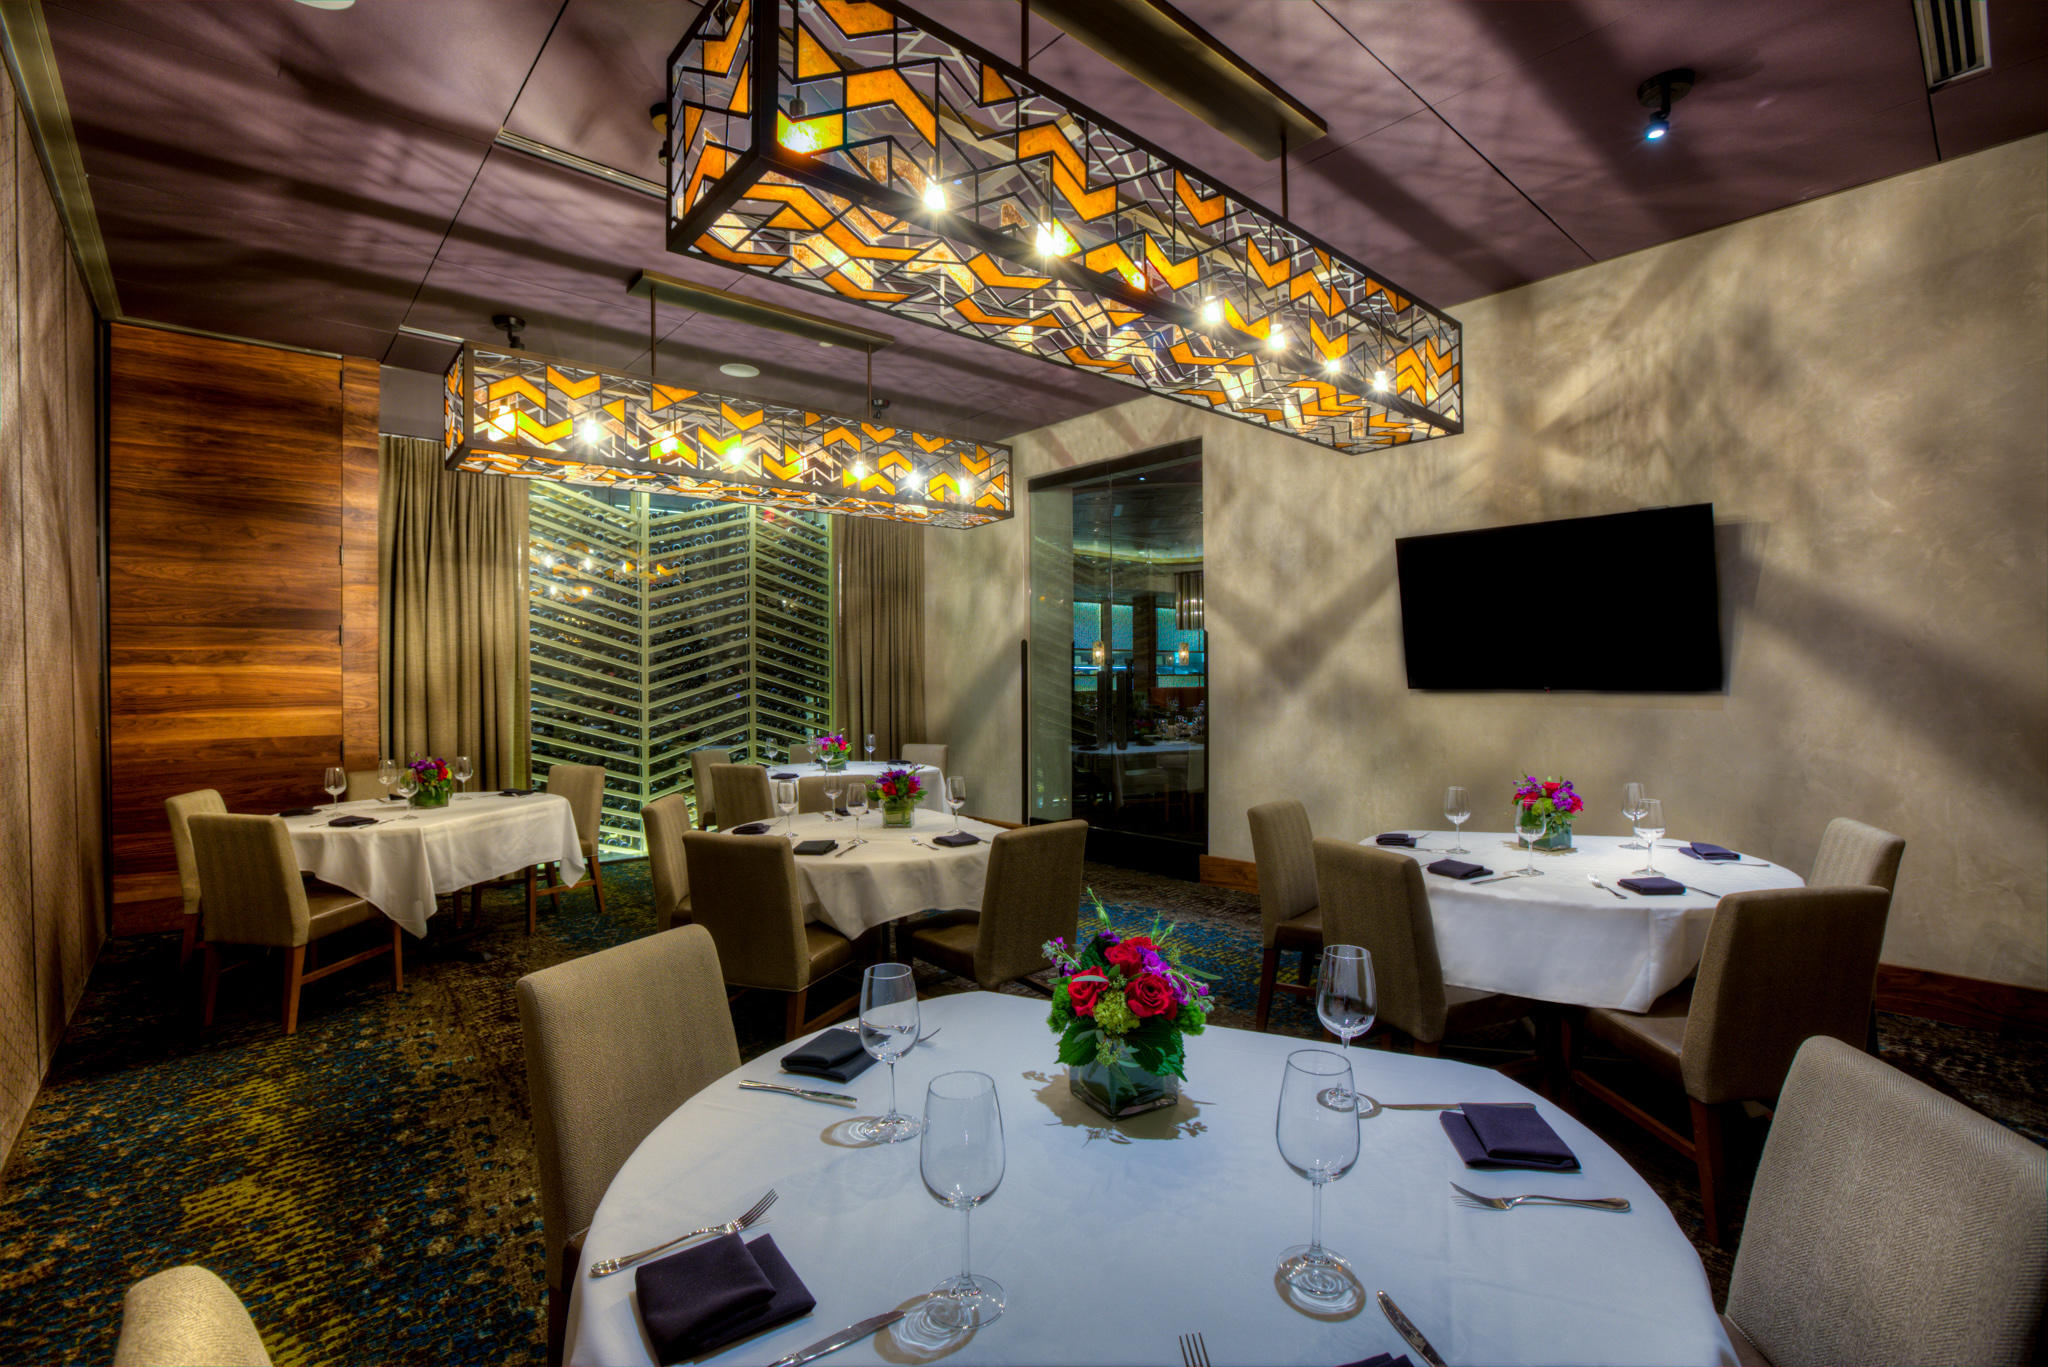 Del Frisco's Double Eagle Steakhouse Orlando OAK ROOM (HALF CELLAR) private dining room